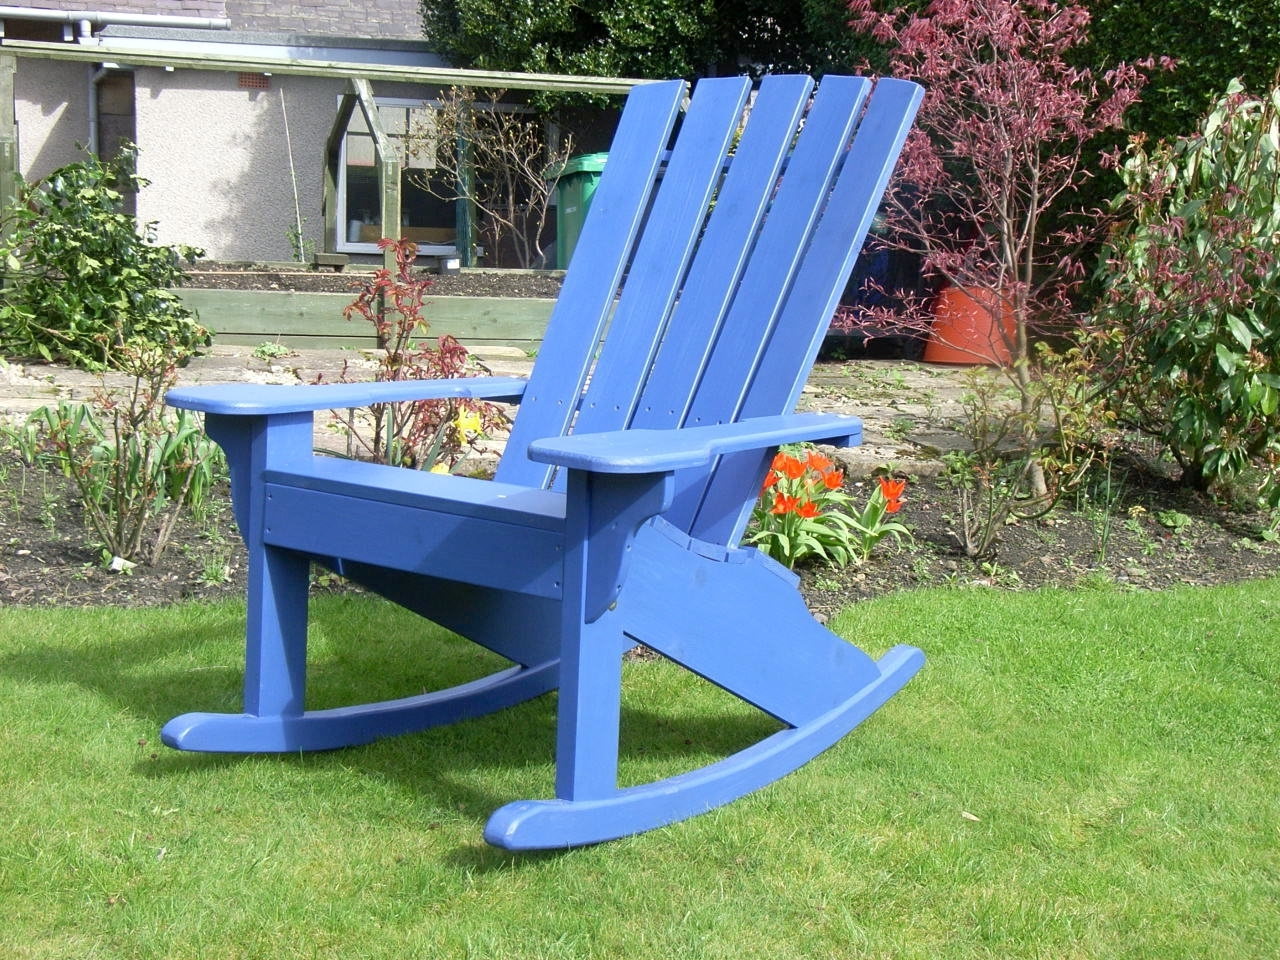 Rocking Chairs For Garden Within Fashionable The Adirondack Rocker Chair – Sunshine Chairs (View 2 of 20)